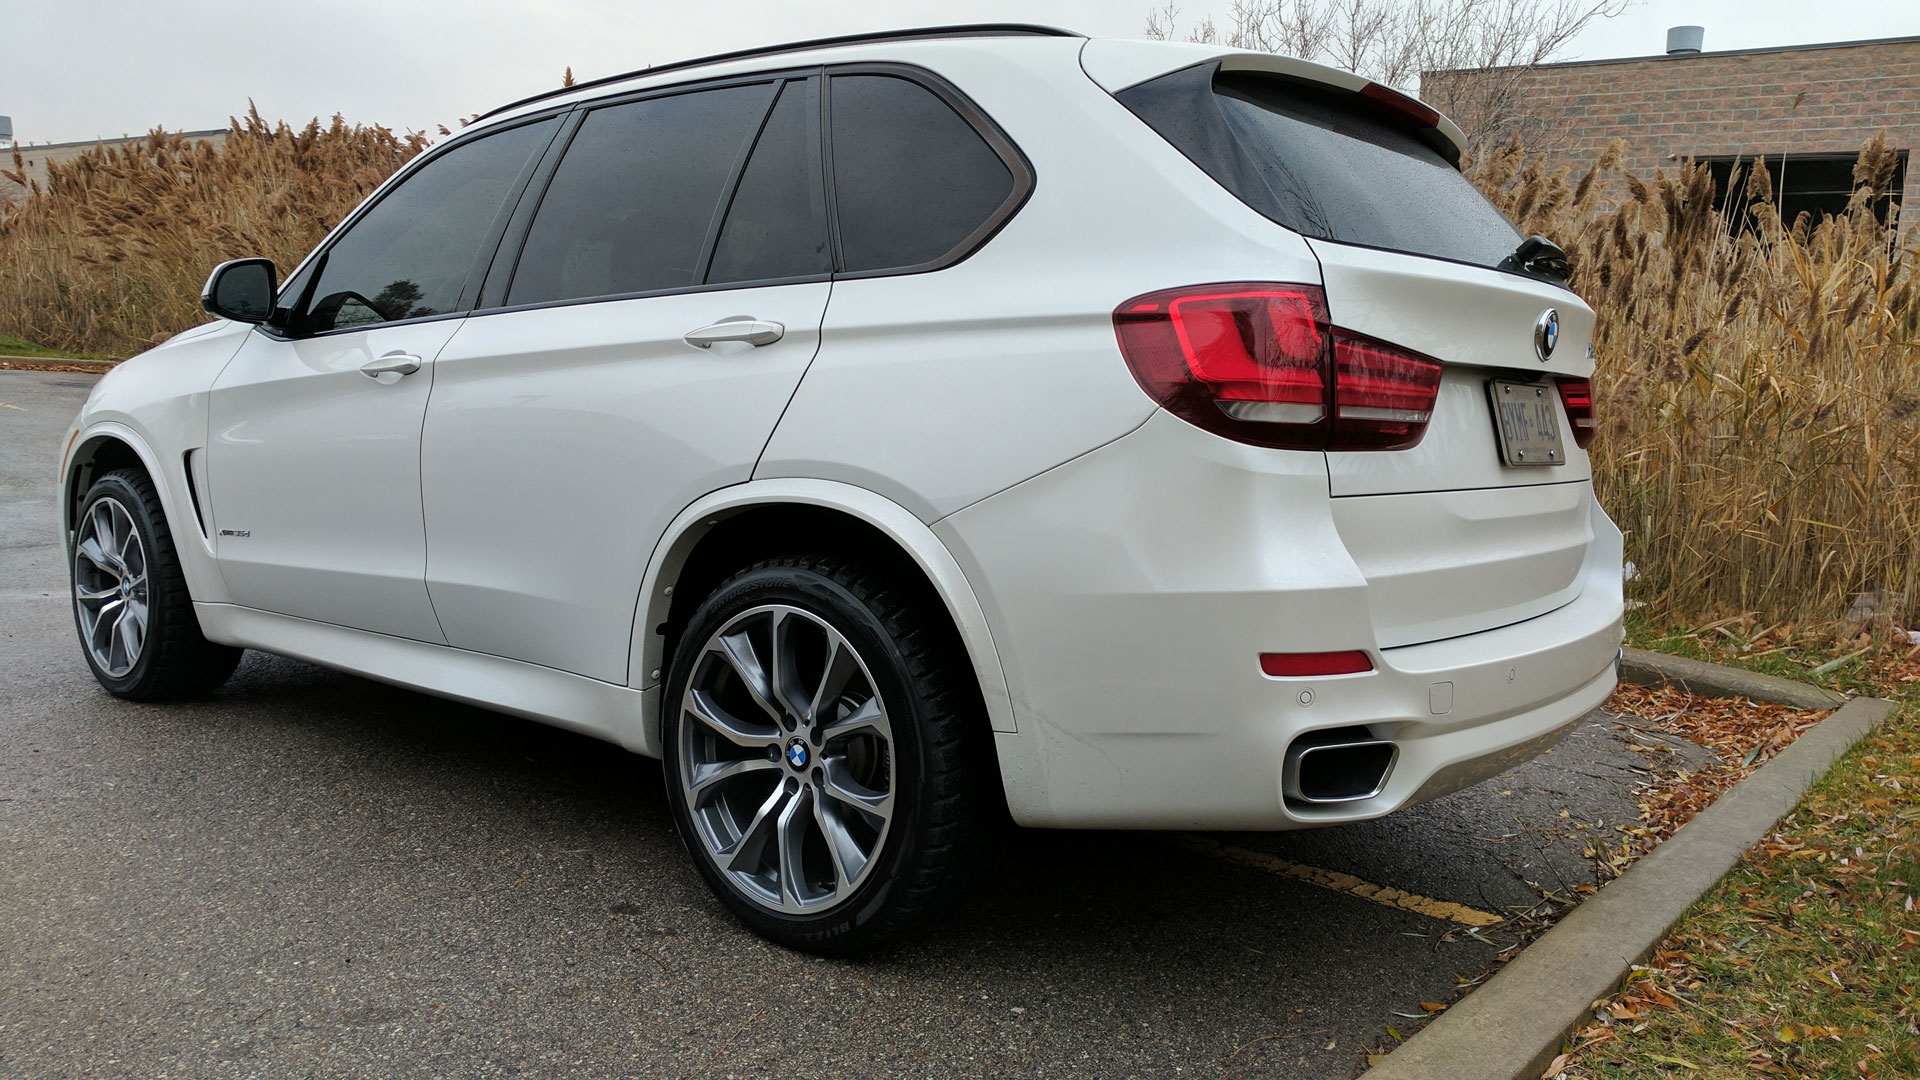 Bmw X5 And X6 Forum F15 F16 View Single Post Random X5 Shot Of The Day Add Yours Let